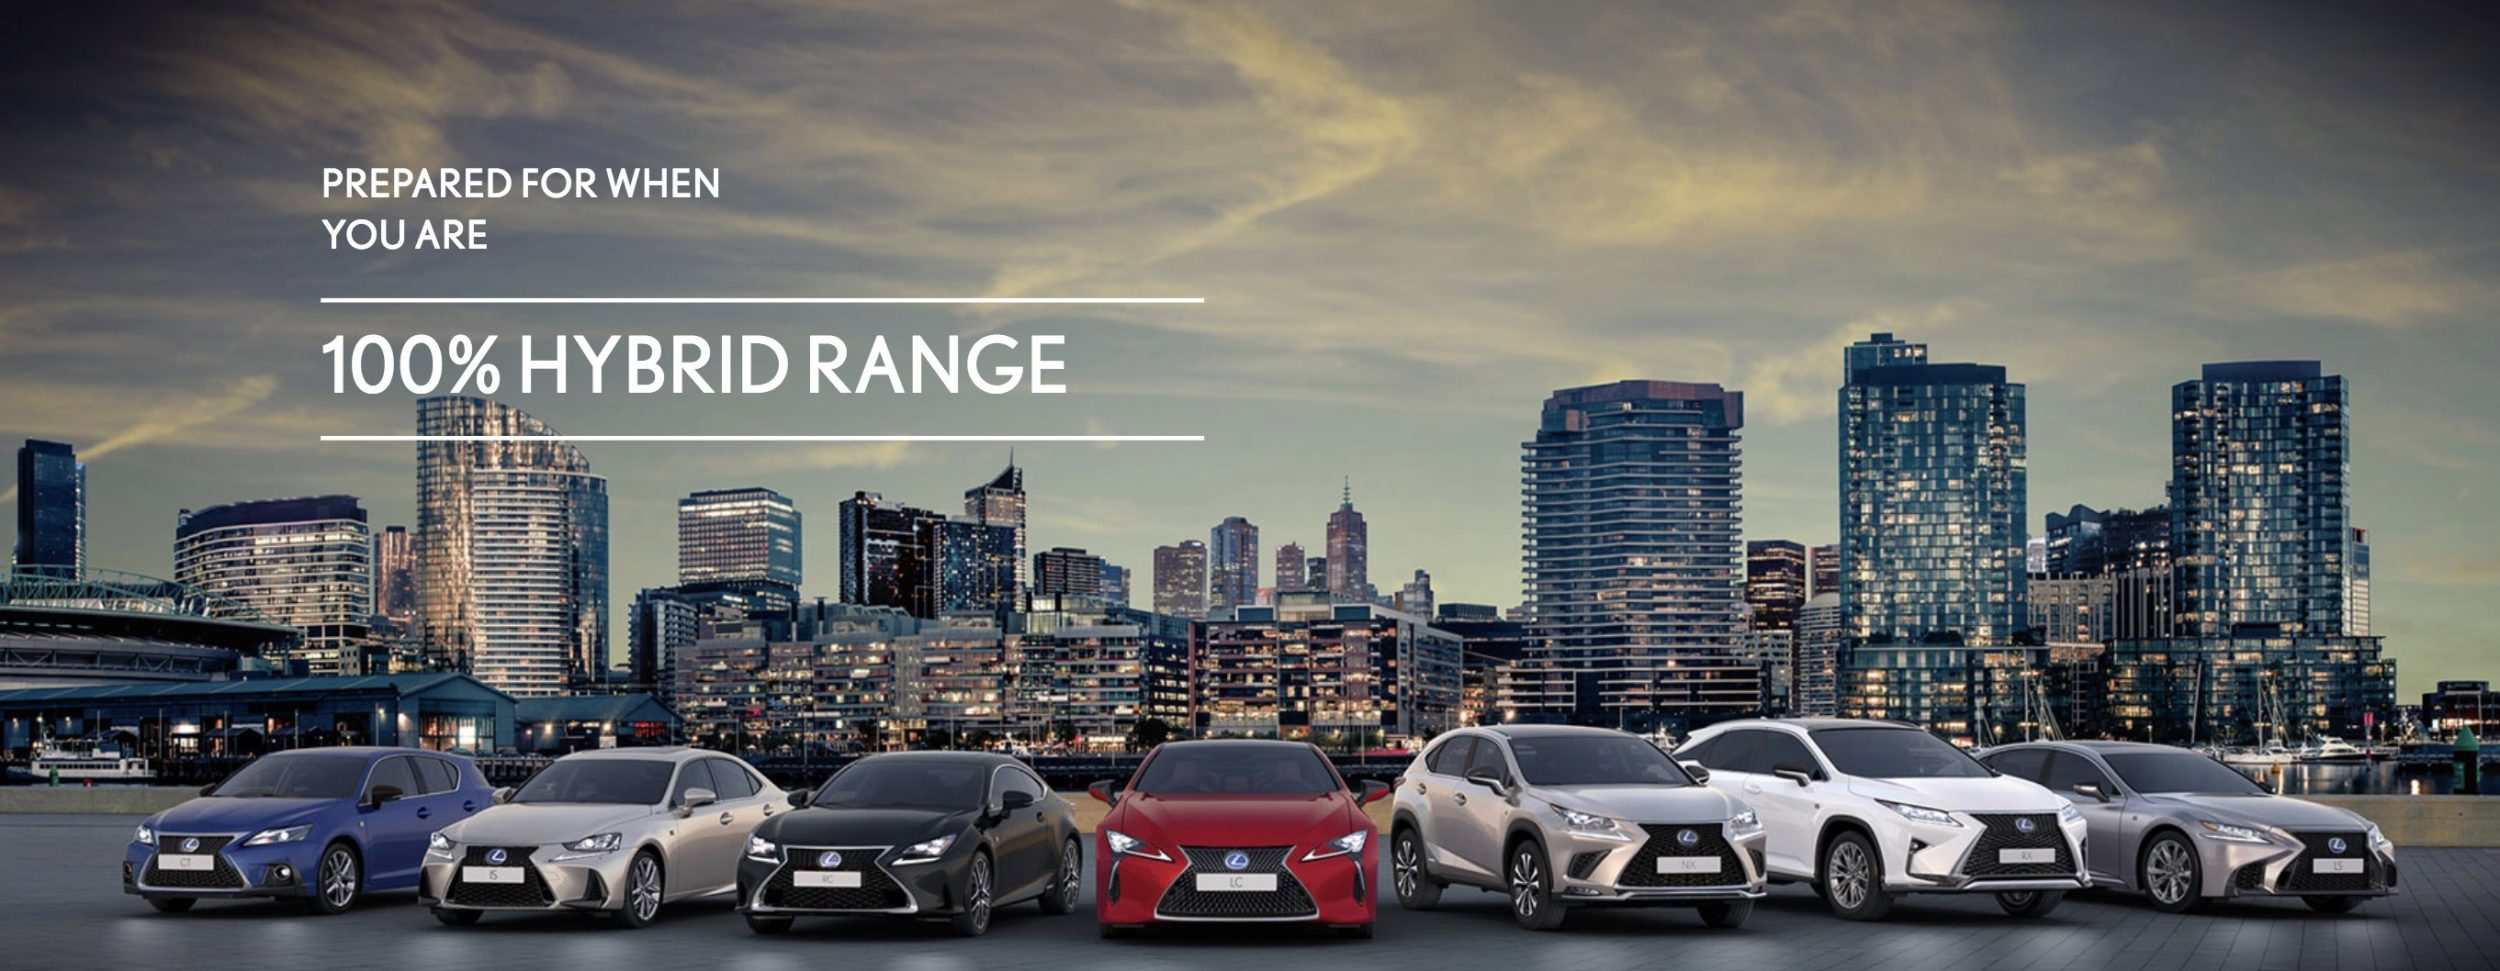 Toyota launches new electric car company with BYD